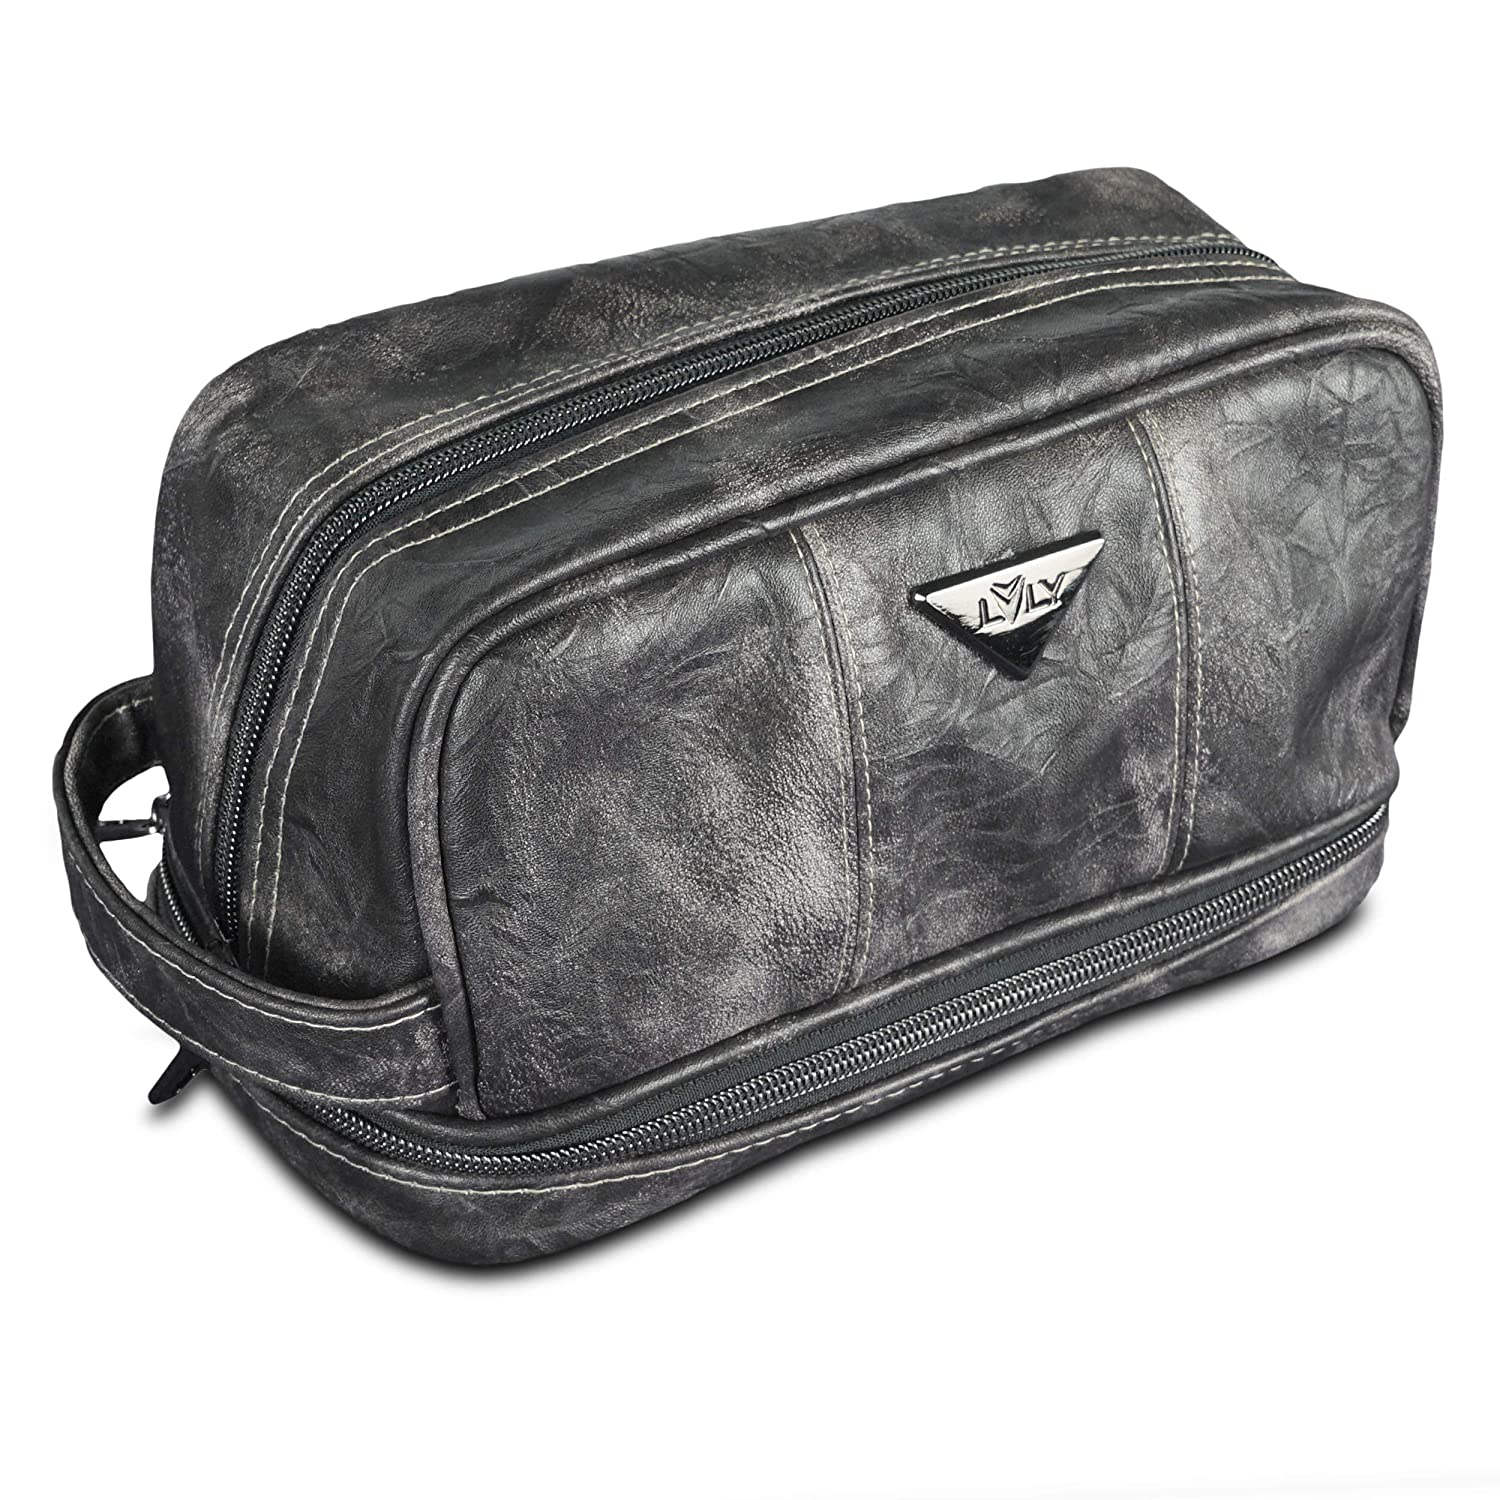 5027878695 LVLY Leather Toiletry Bag Dopp Kit Mens Toiletries Travel Bags ...